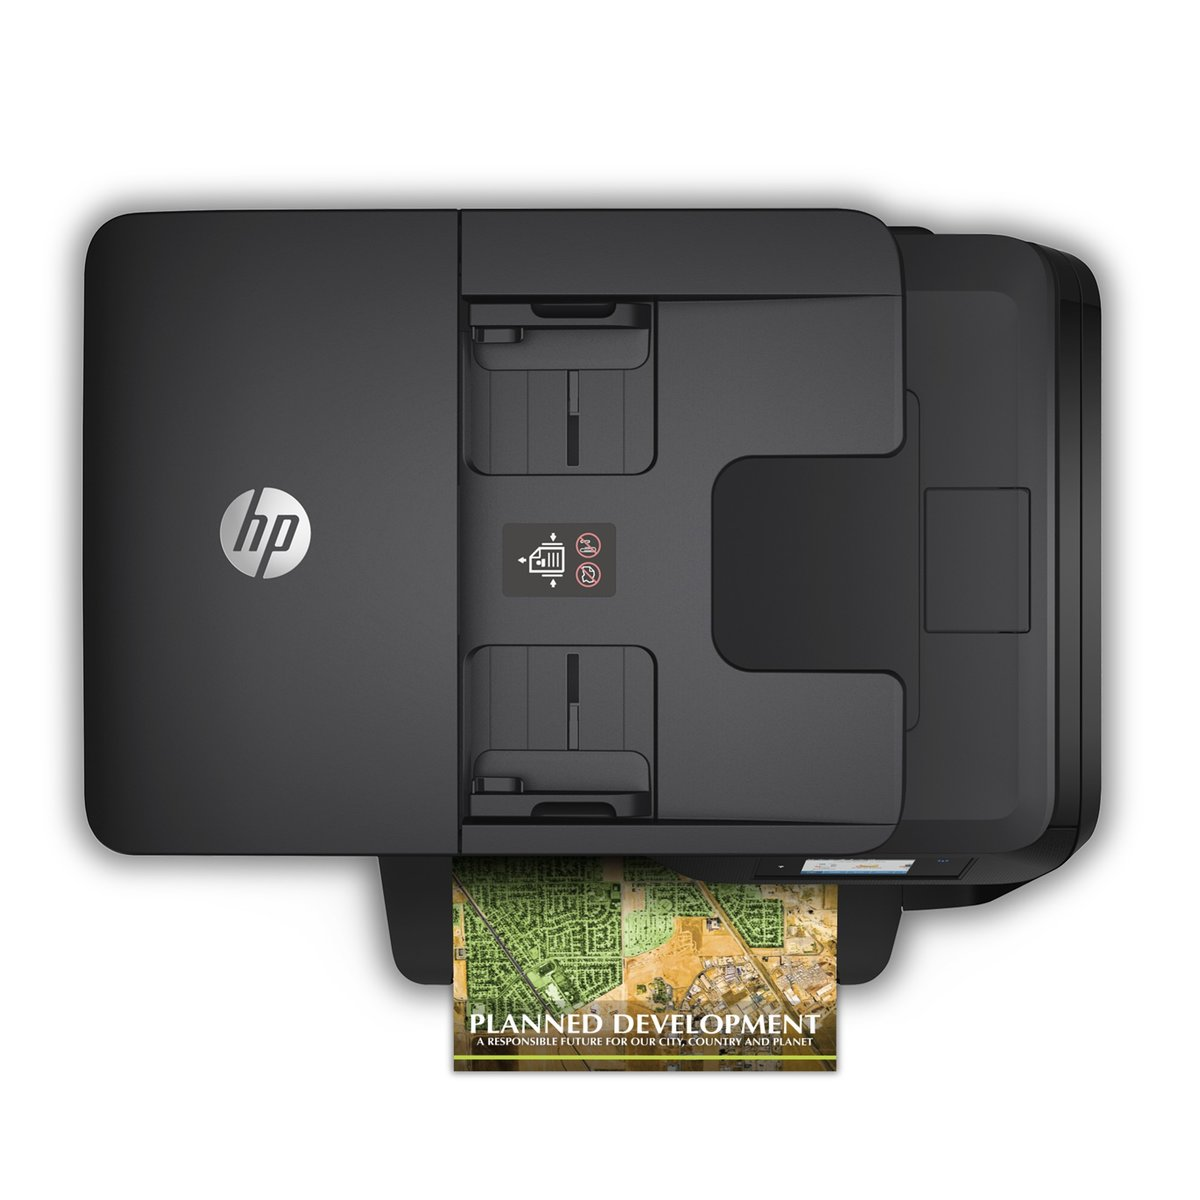 Hp Officejet Pro 8710 All In One Inkjet Printer Staples